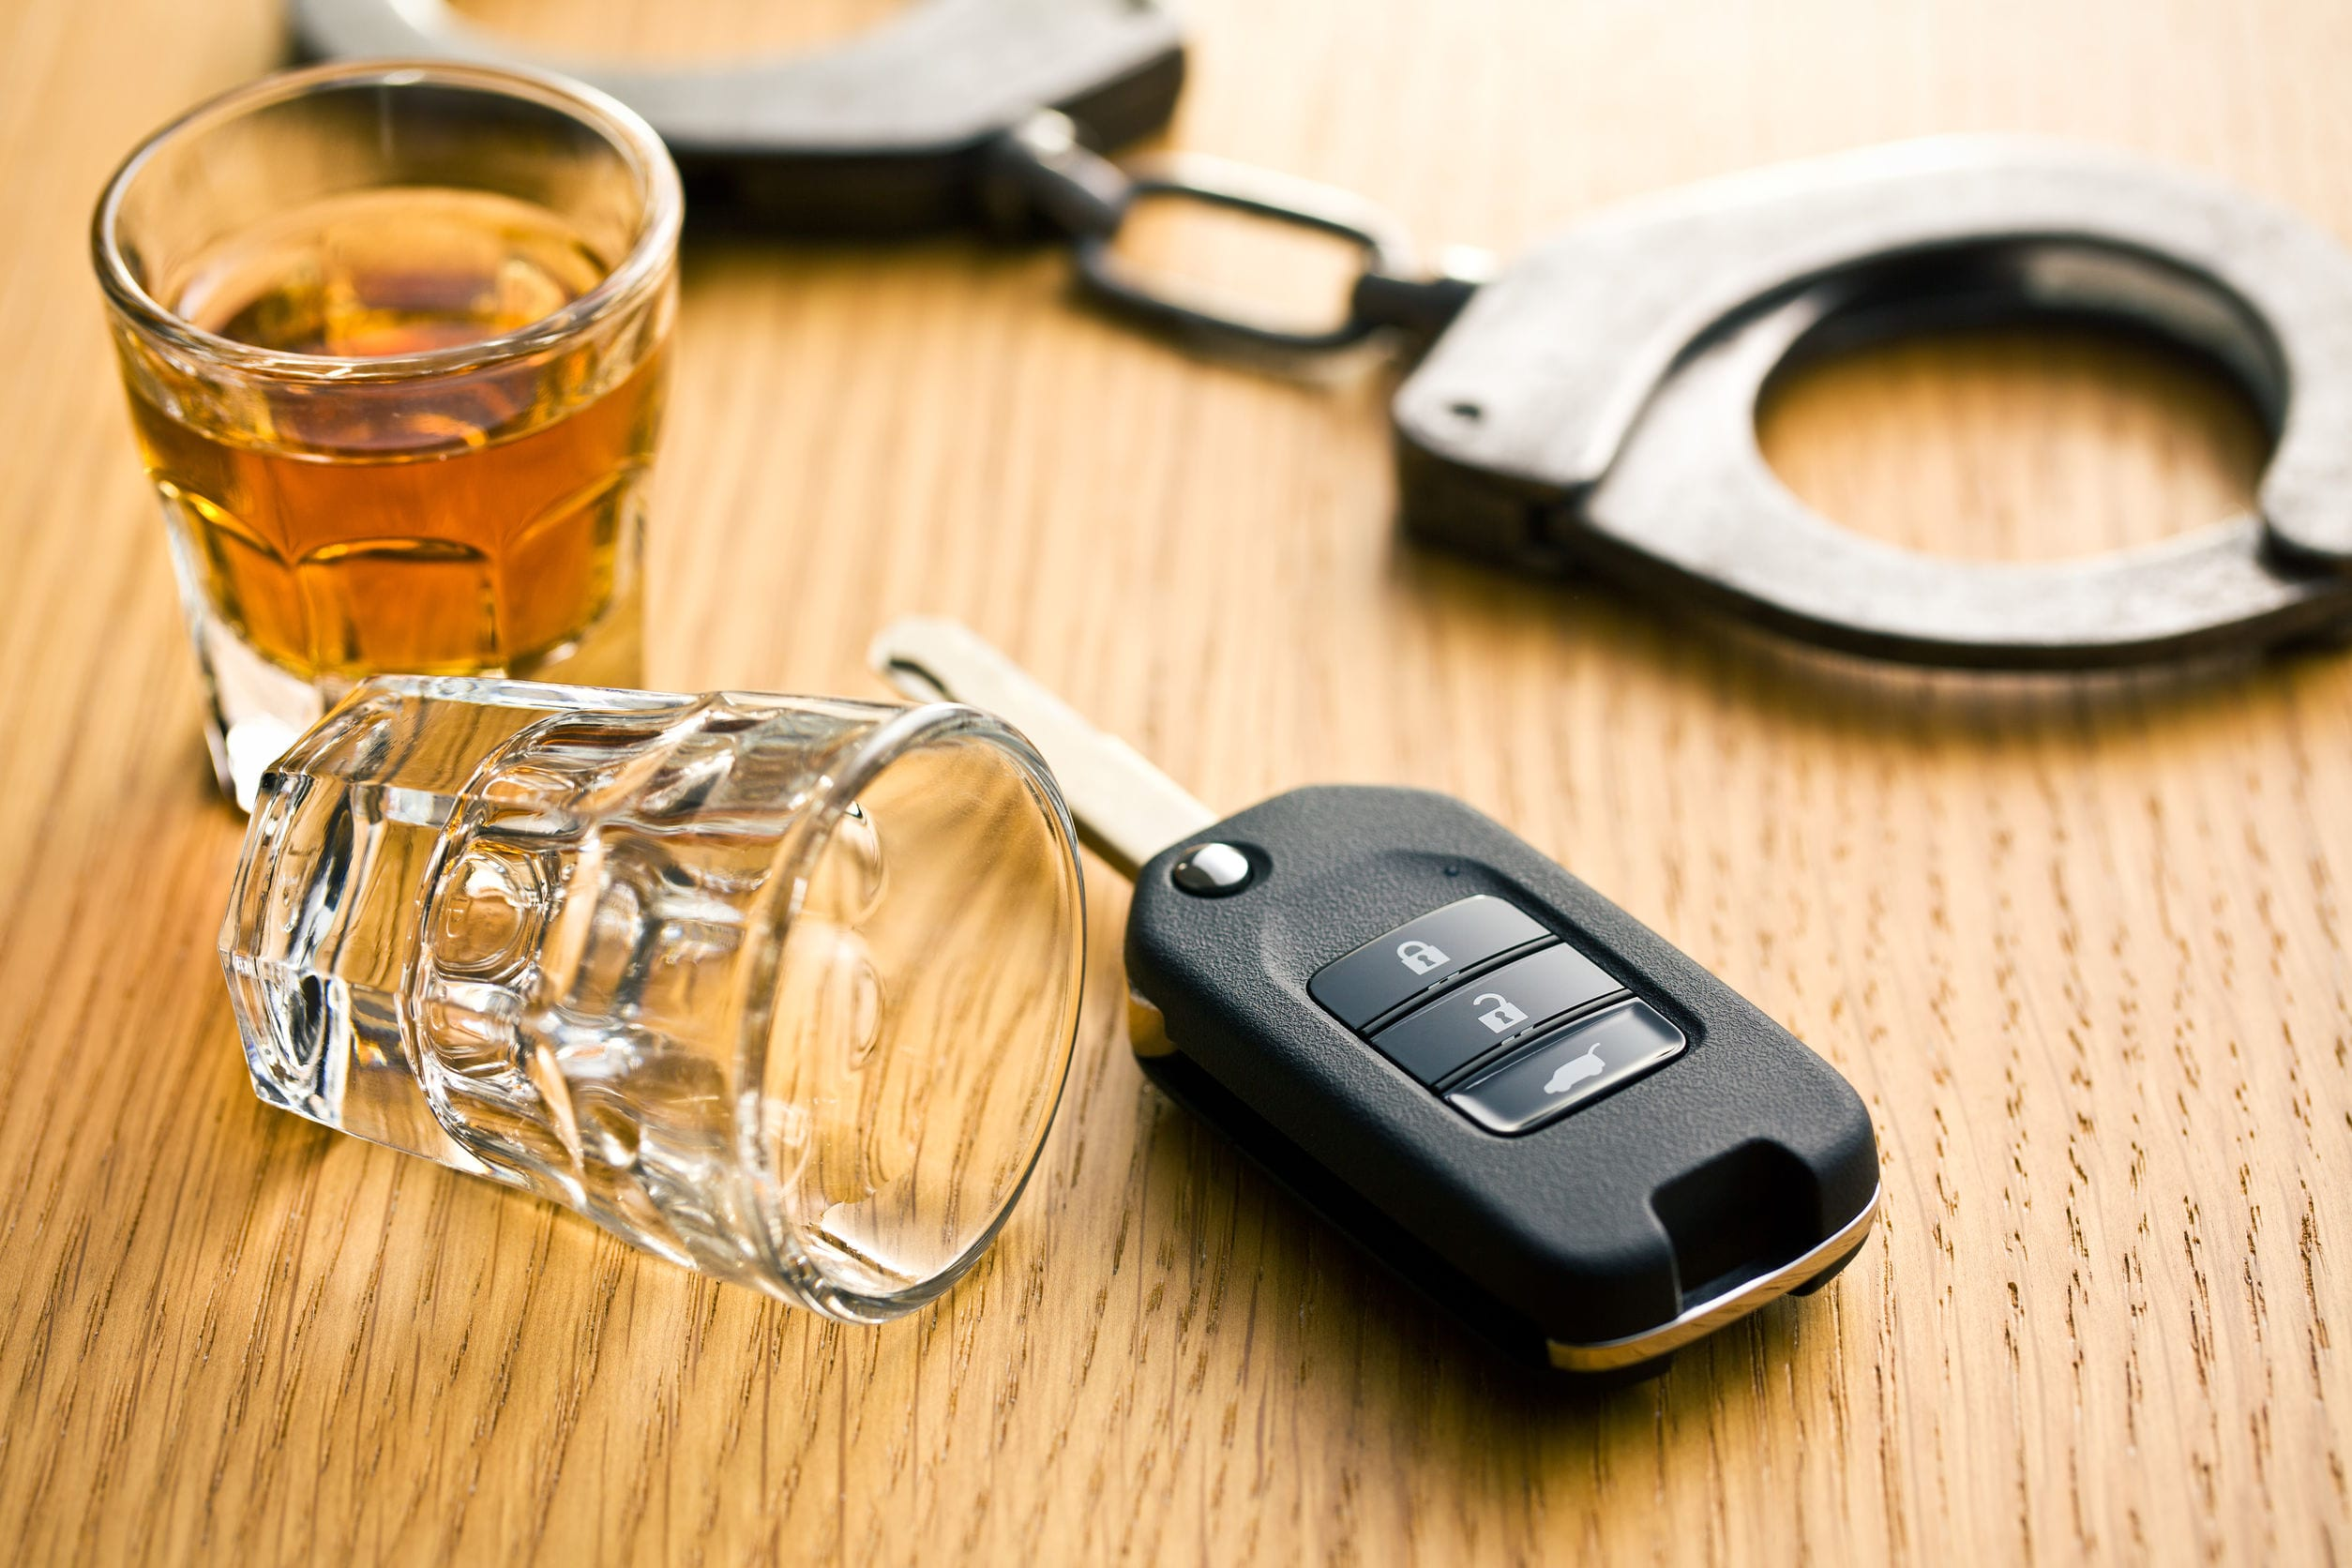 Use These Strategies to Battle Your Illinois DUI Charge